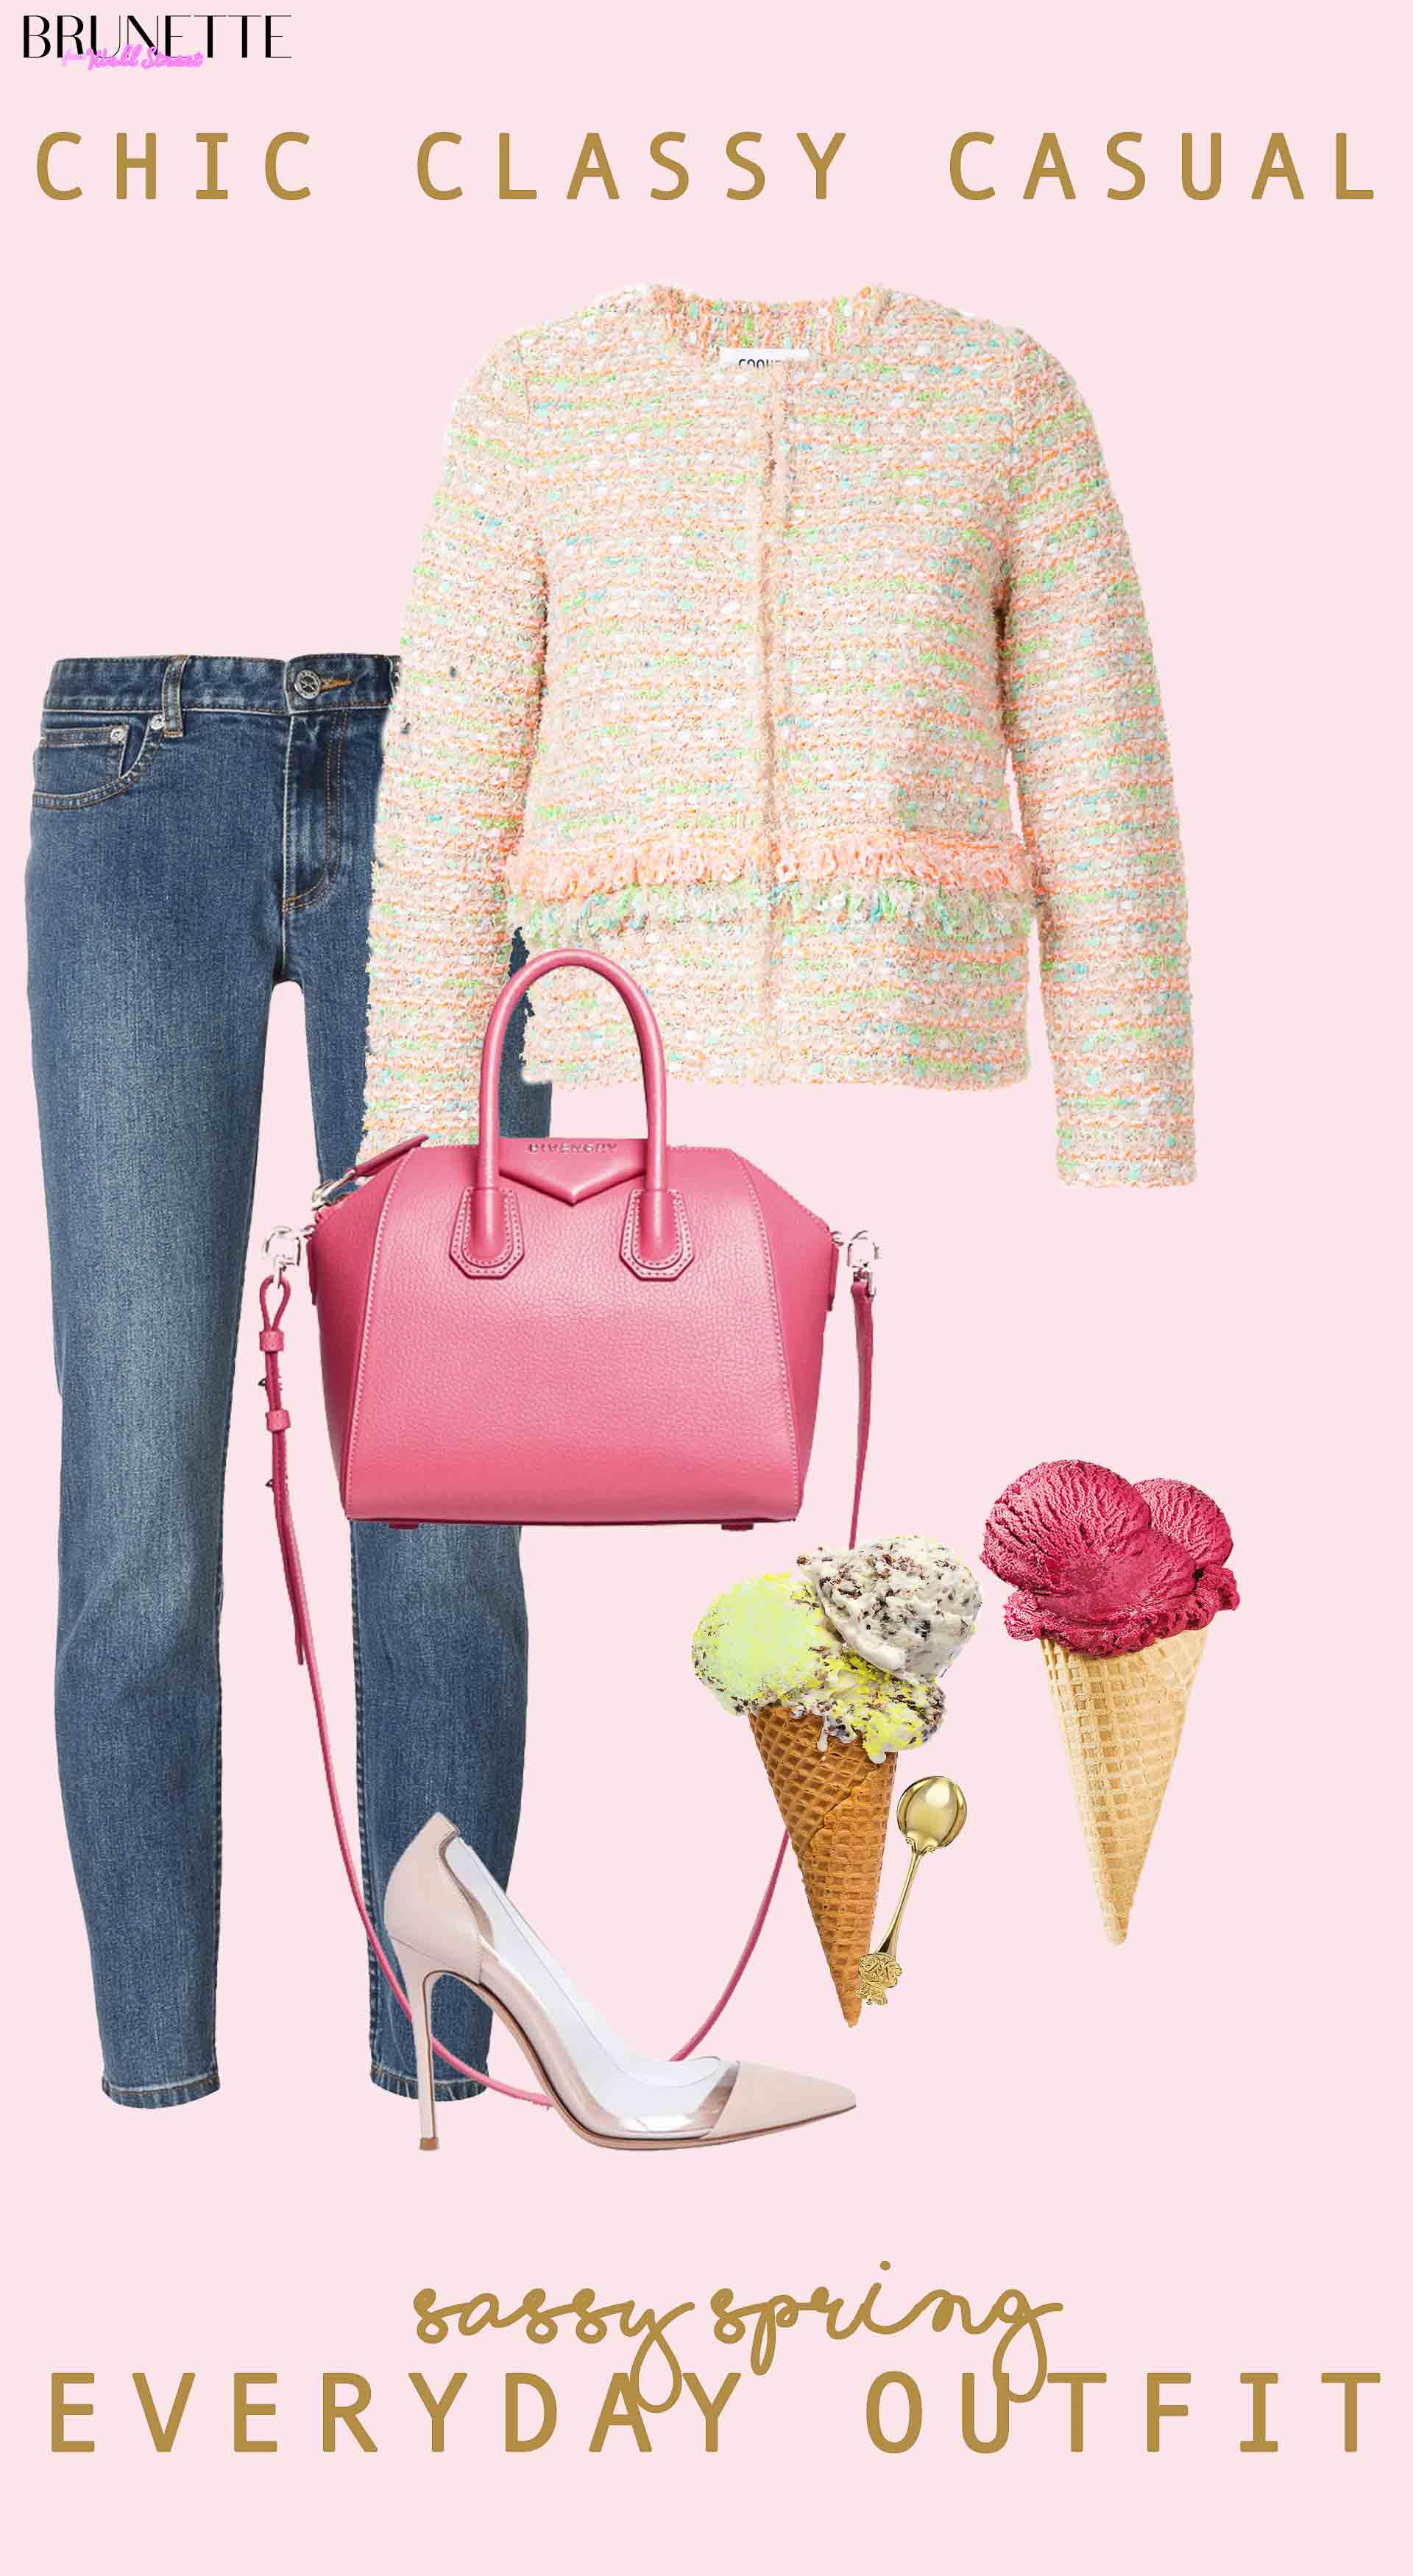 Yellow and pink tweed jacket, mom jeans, pink top handle tote bag, Gianvito Rossi plexi pumps, raspberry ice cream, pistachio stracciatella ice icream with text overlay Chic classy casual sassy spring everyday outfit